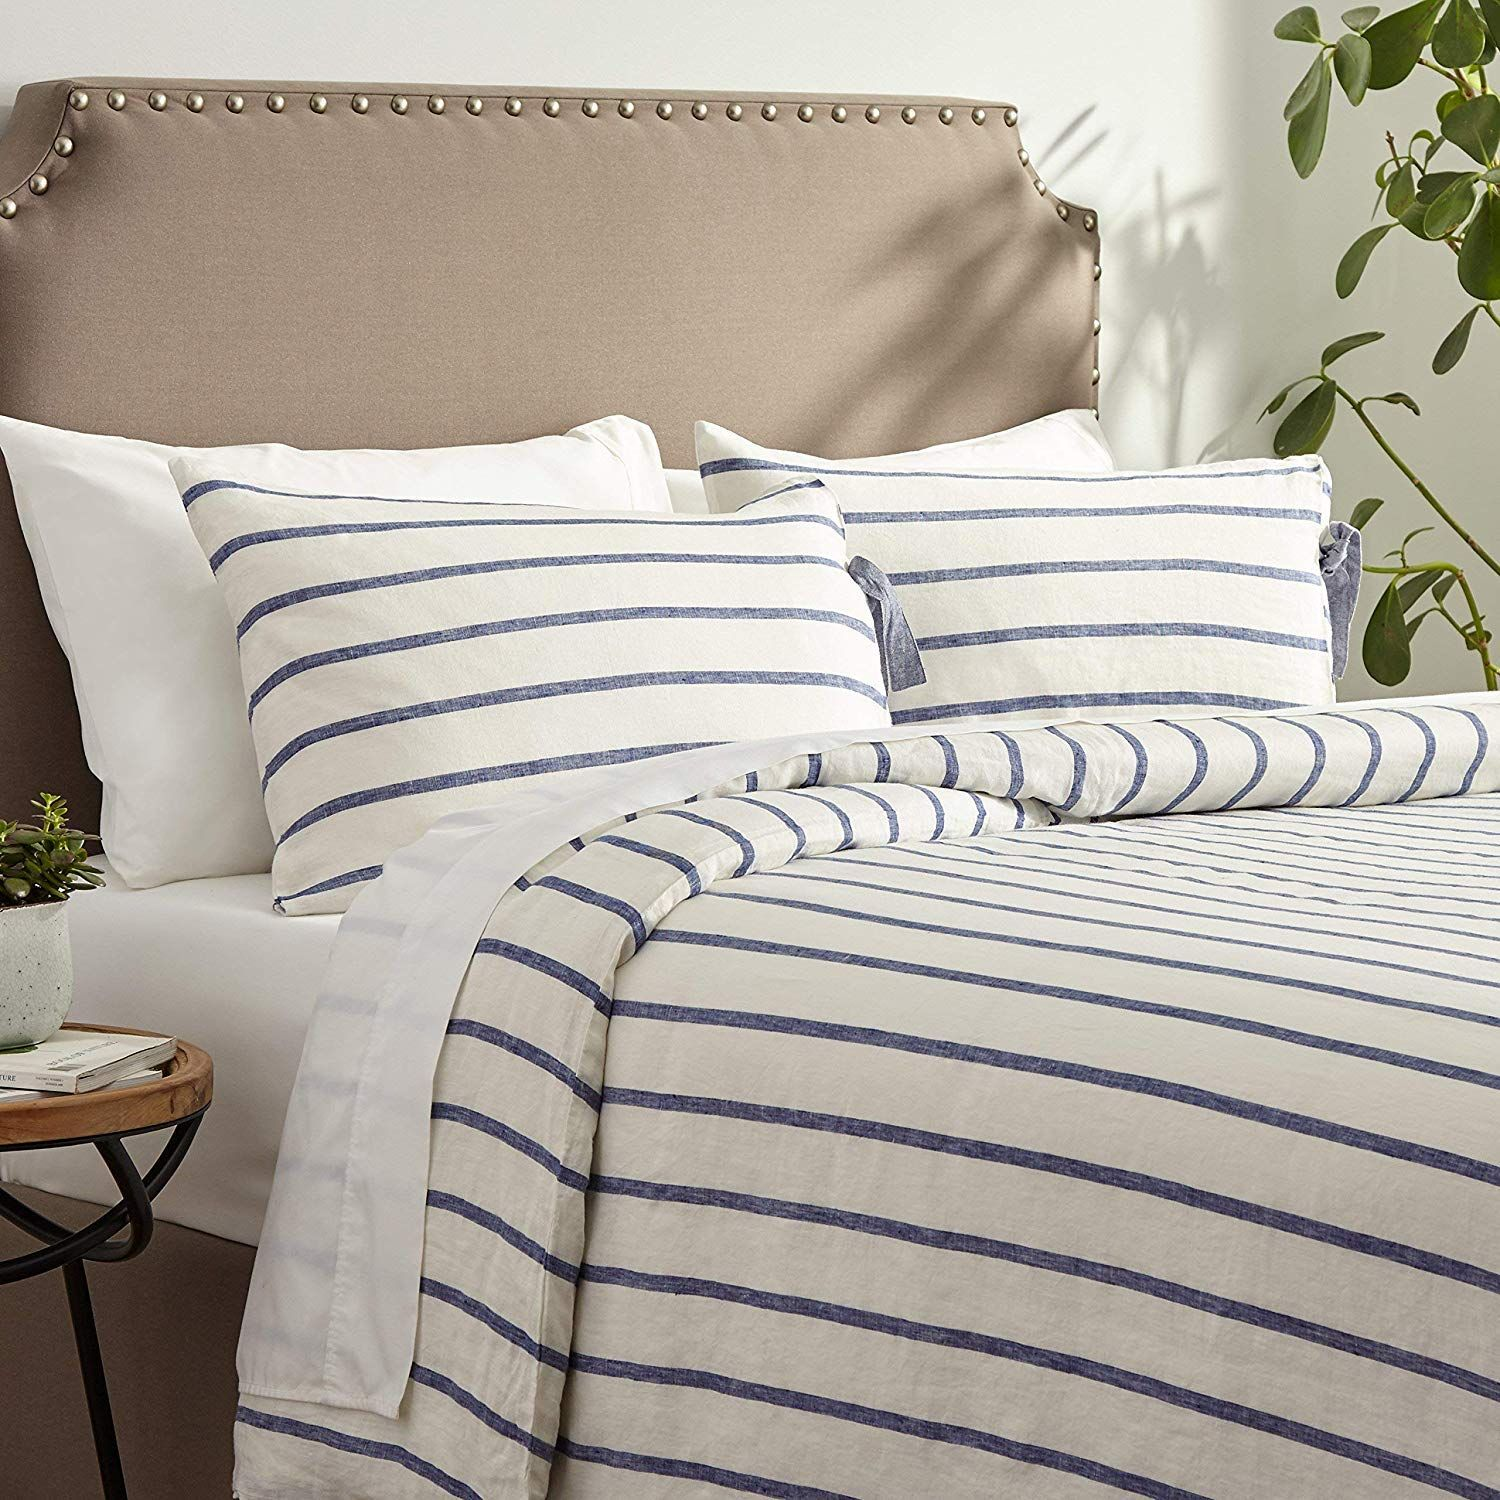 Farmhouse Bedding Sets Rustic Bedding Sets Farmhouse Goals In 2020 Farmhouse Bedding Sets Duvet Cover Sets Farmhouse Bedding